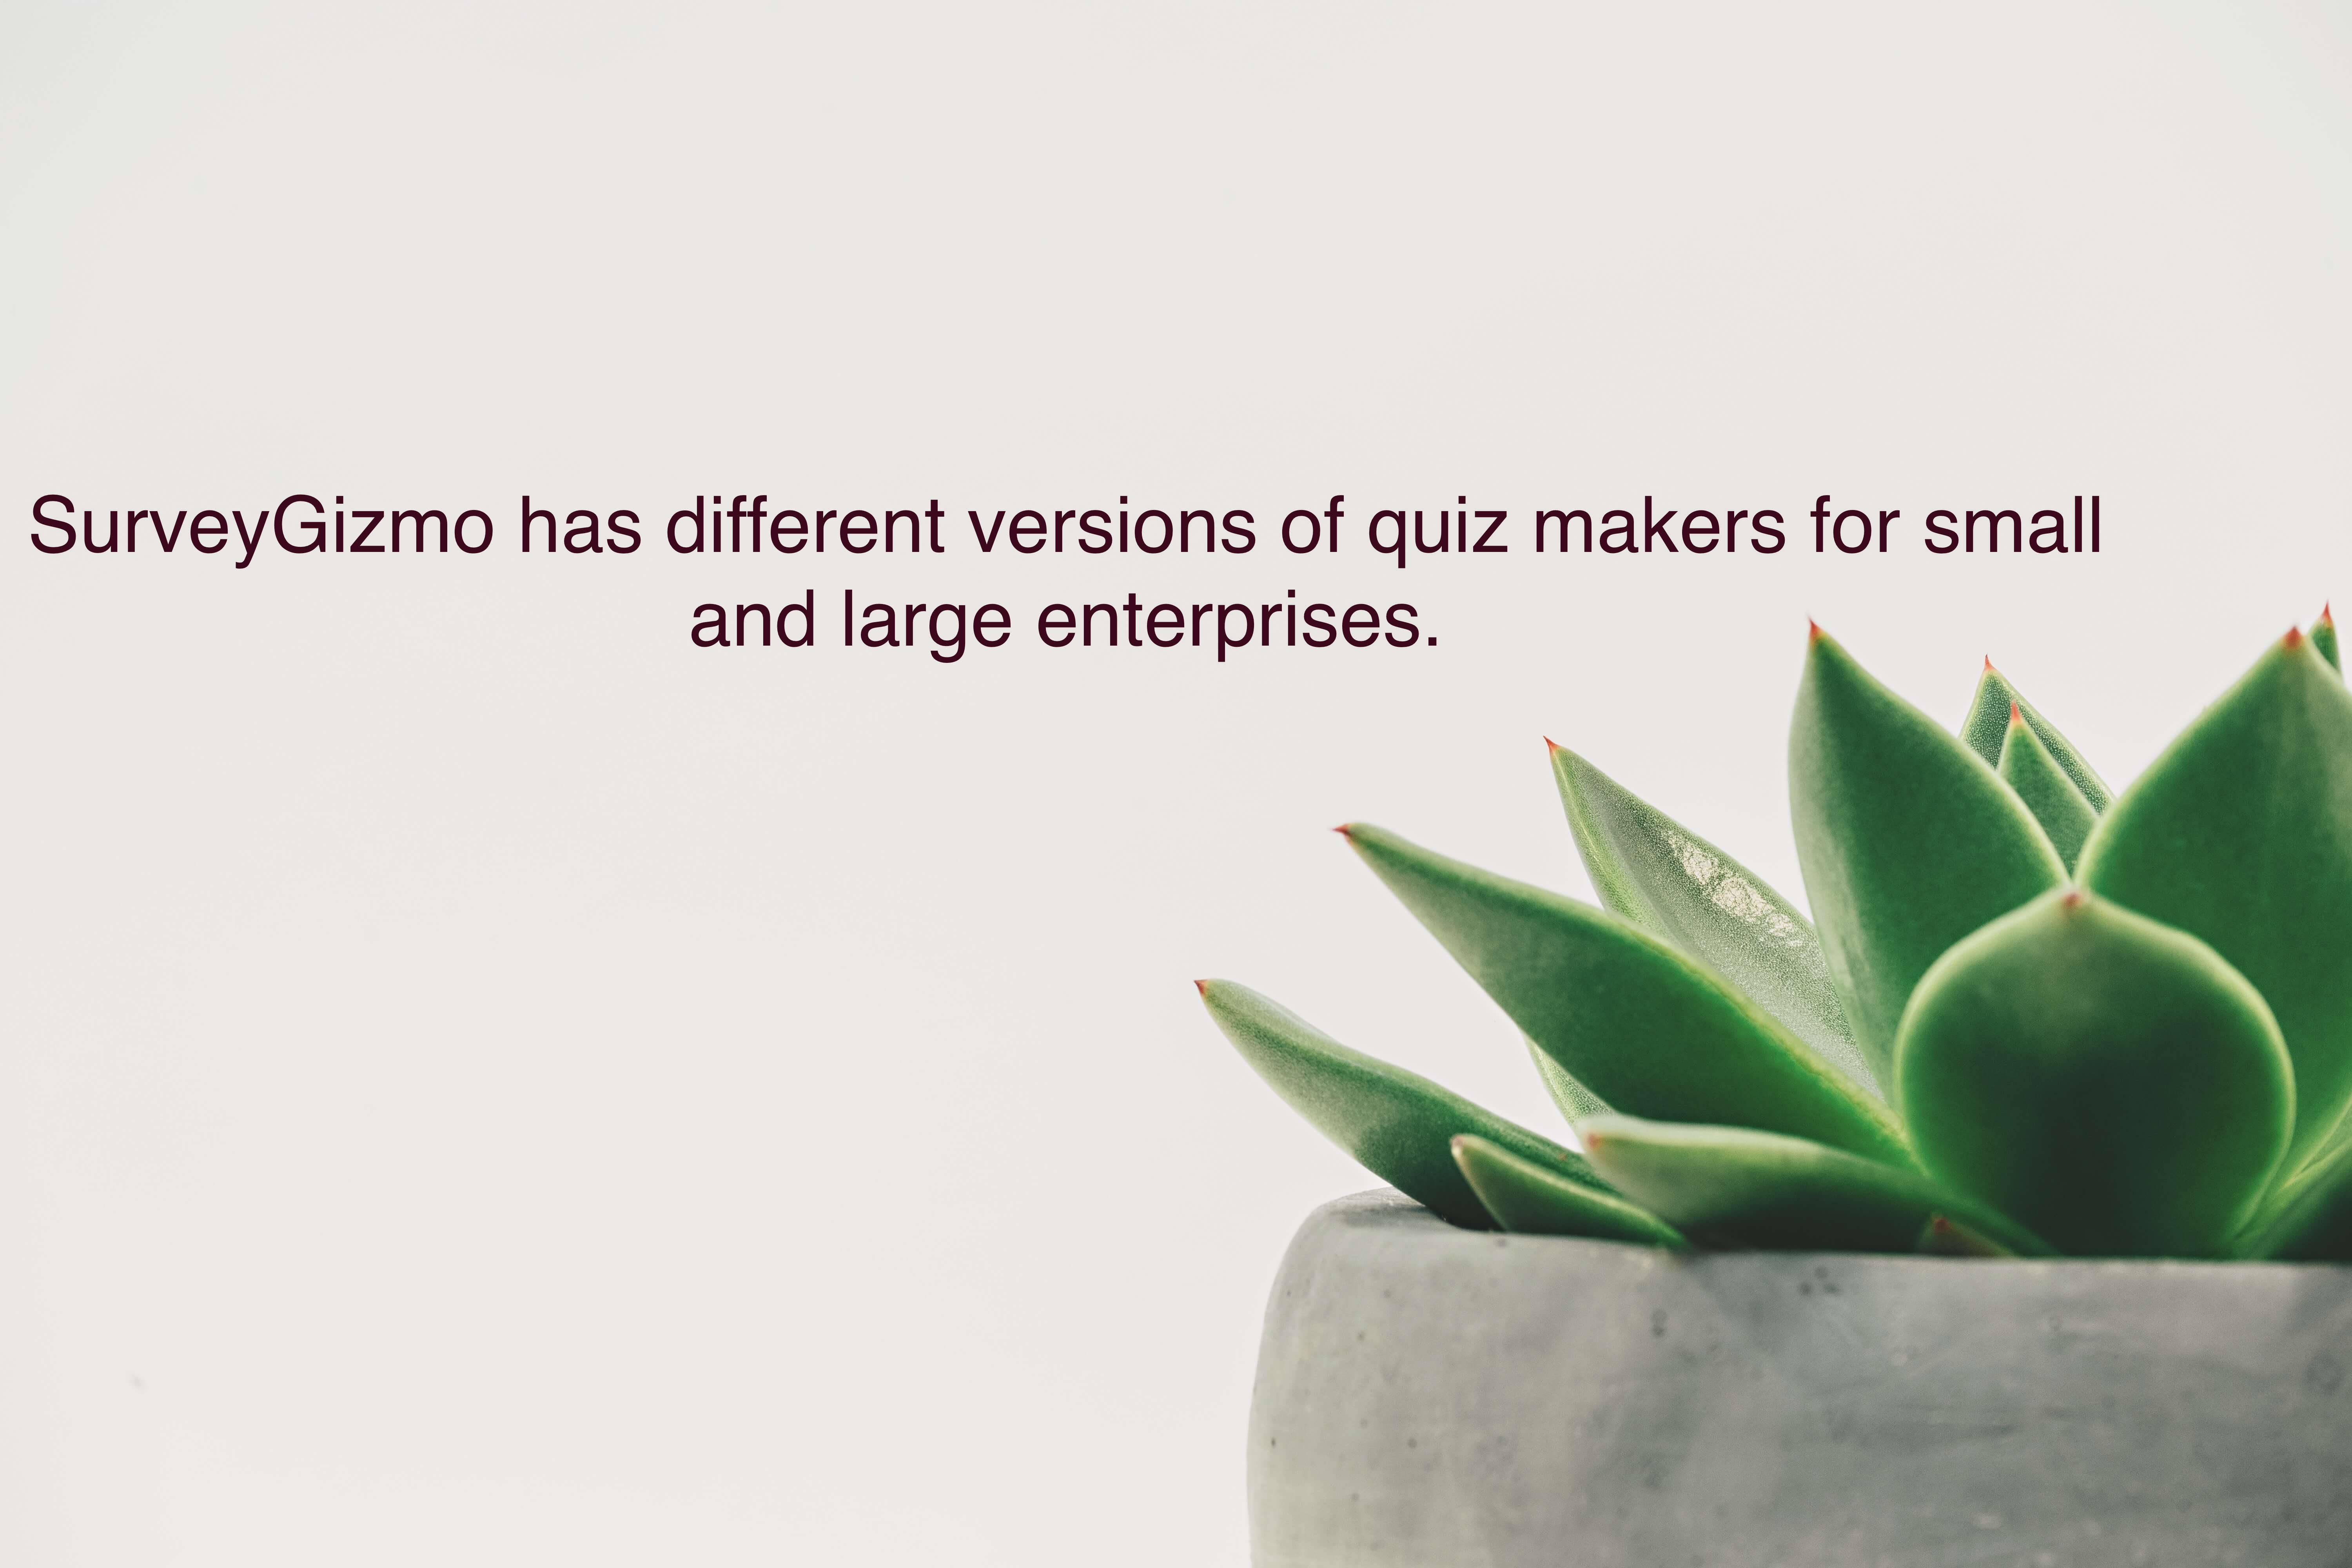 SurveyGizmo has two different versions of quiz makers for small and large enterprises.